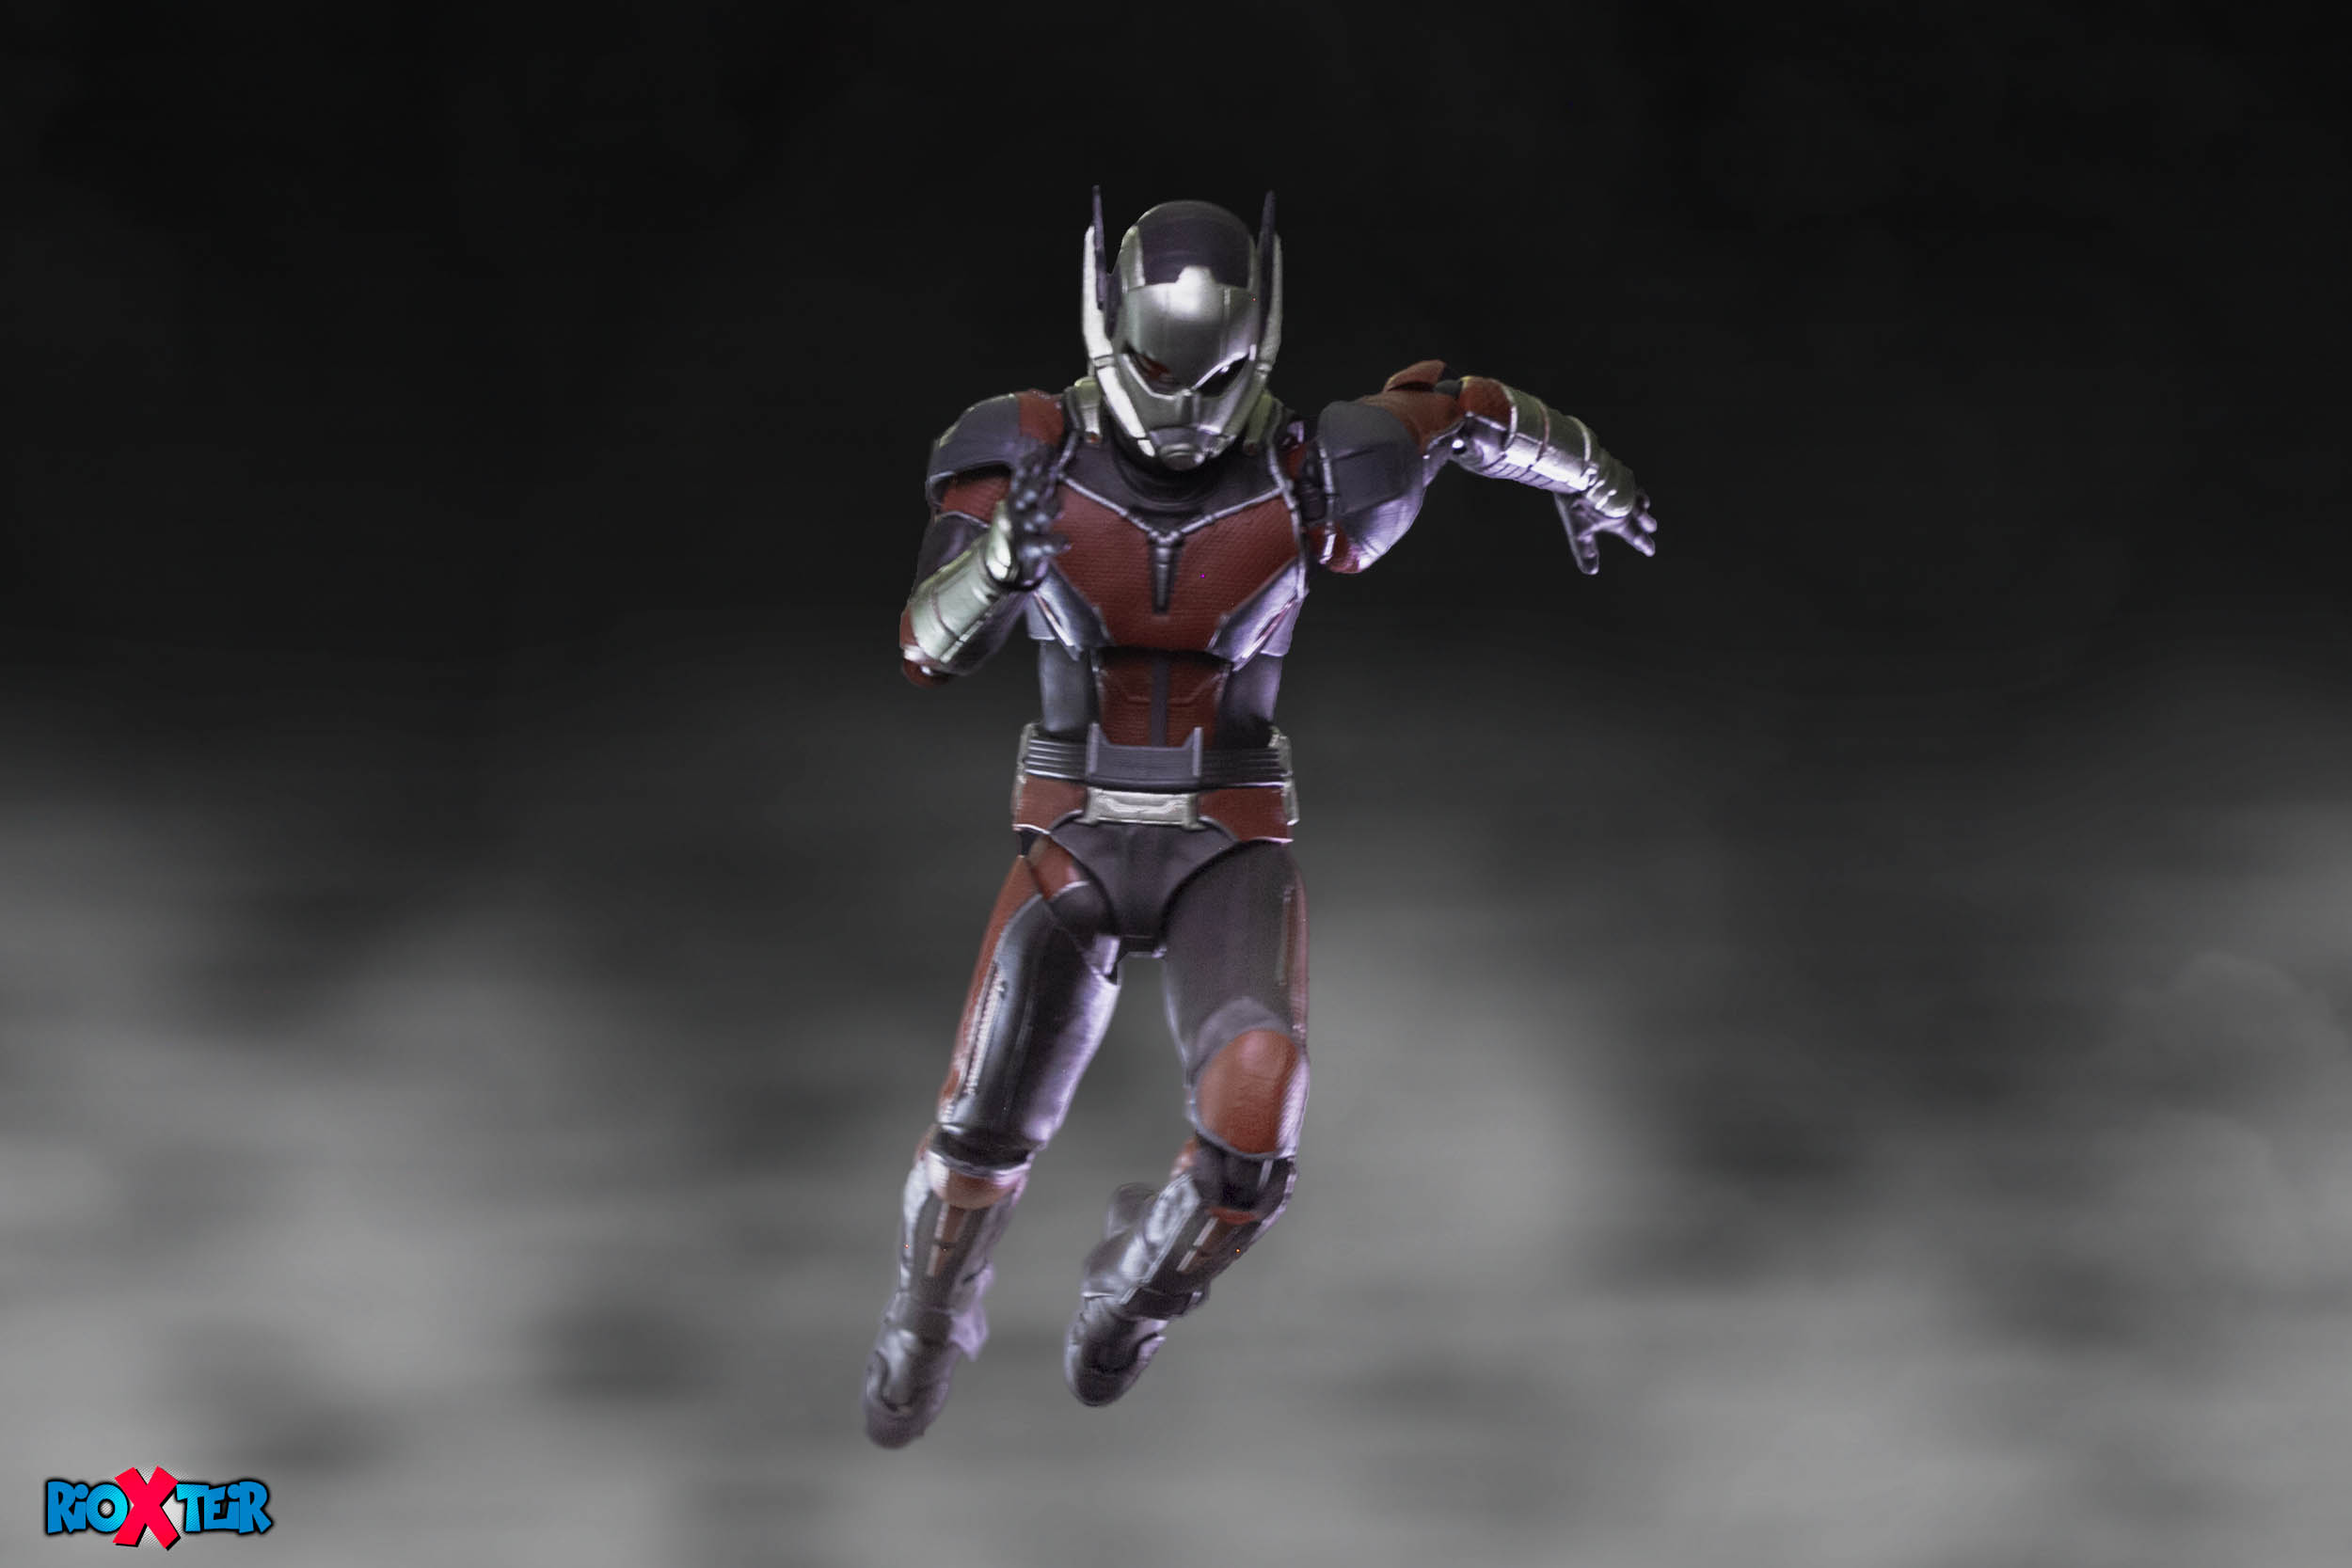 S.H.Figuarts Ant-Man Run